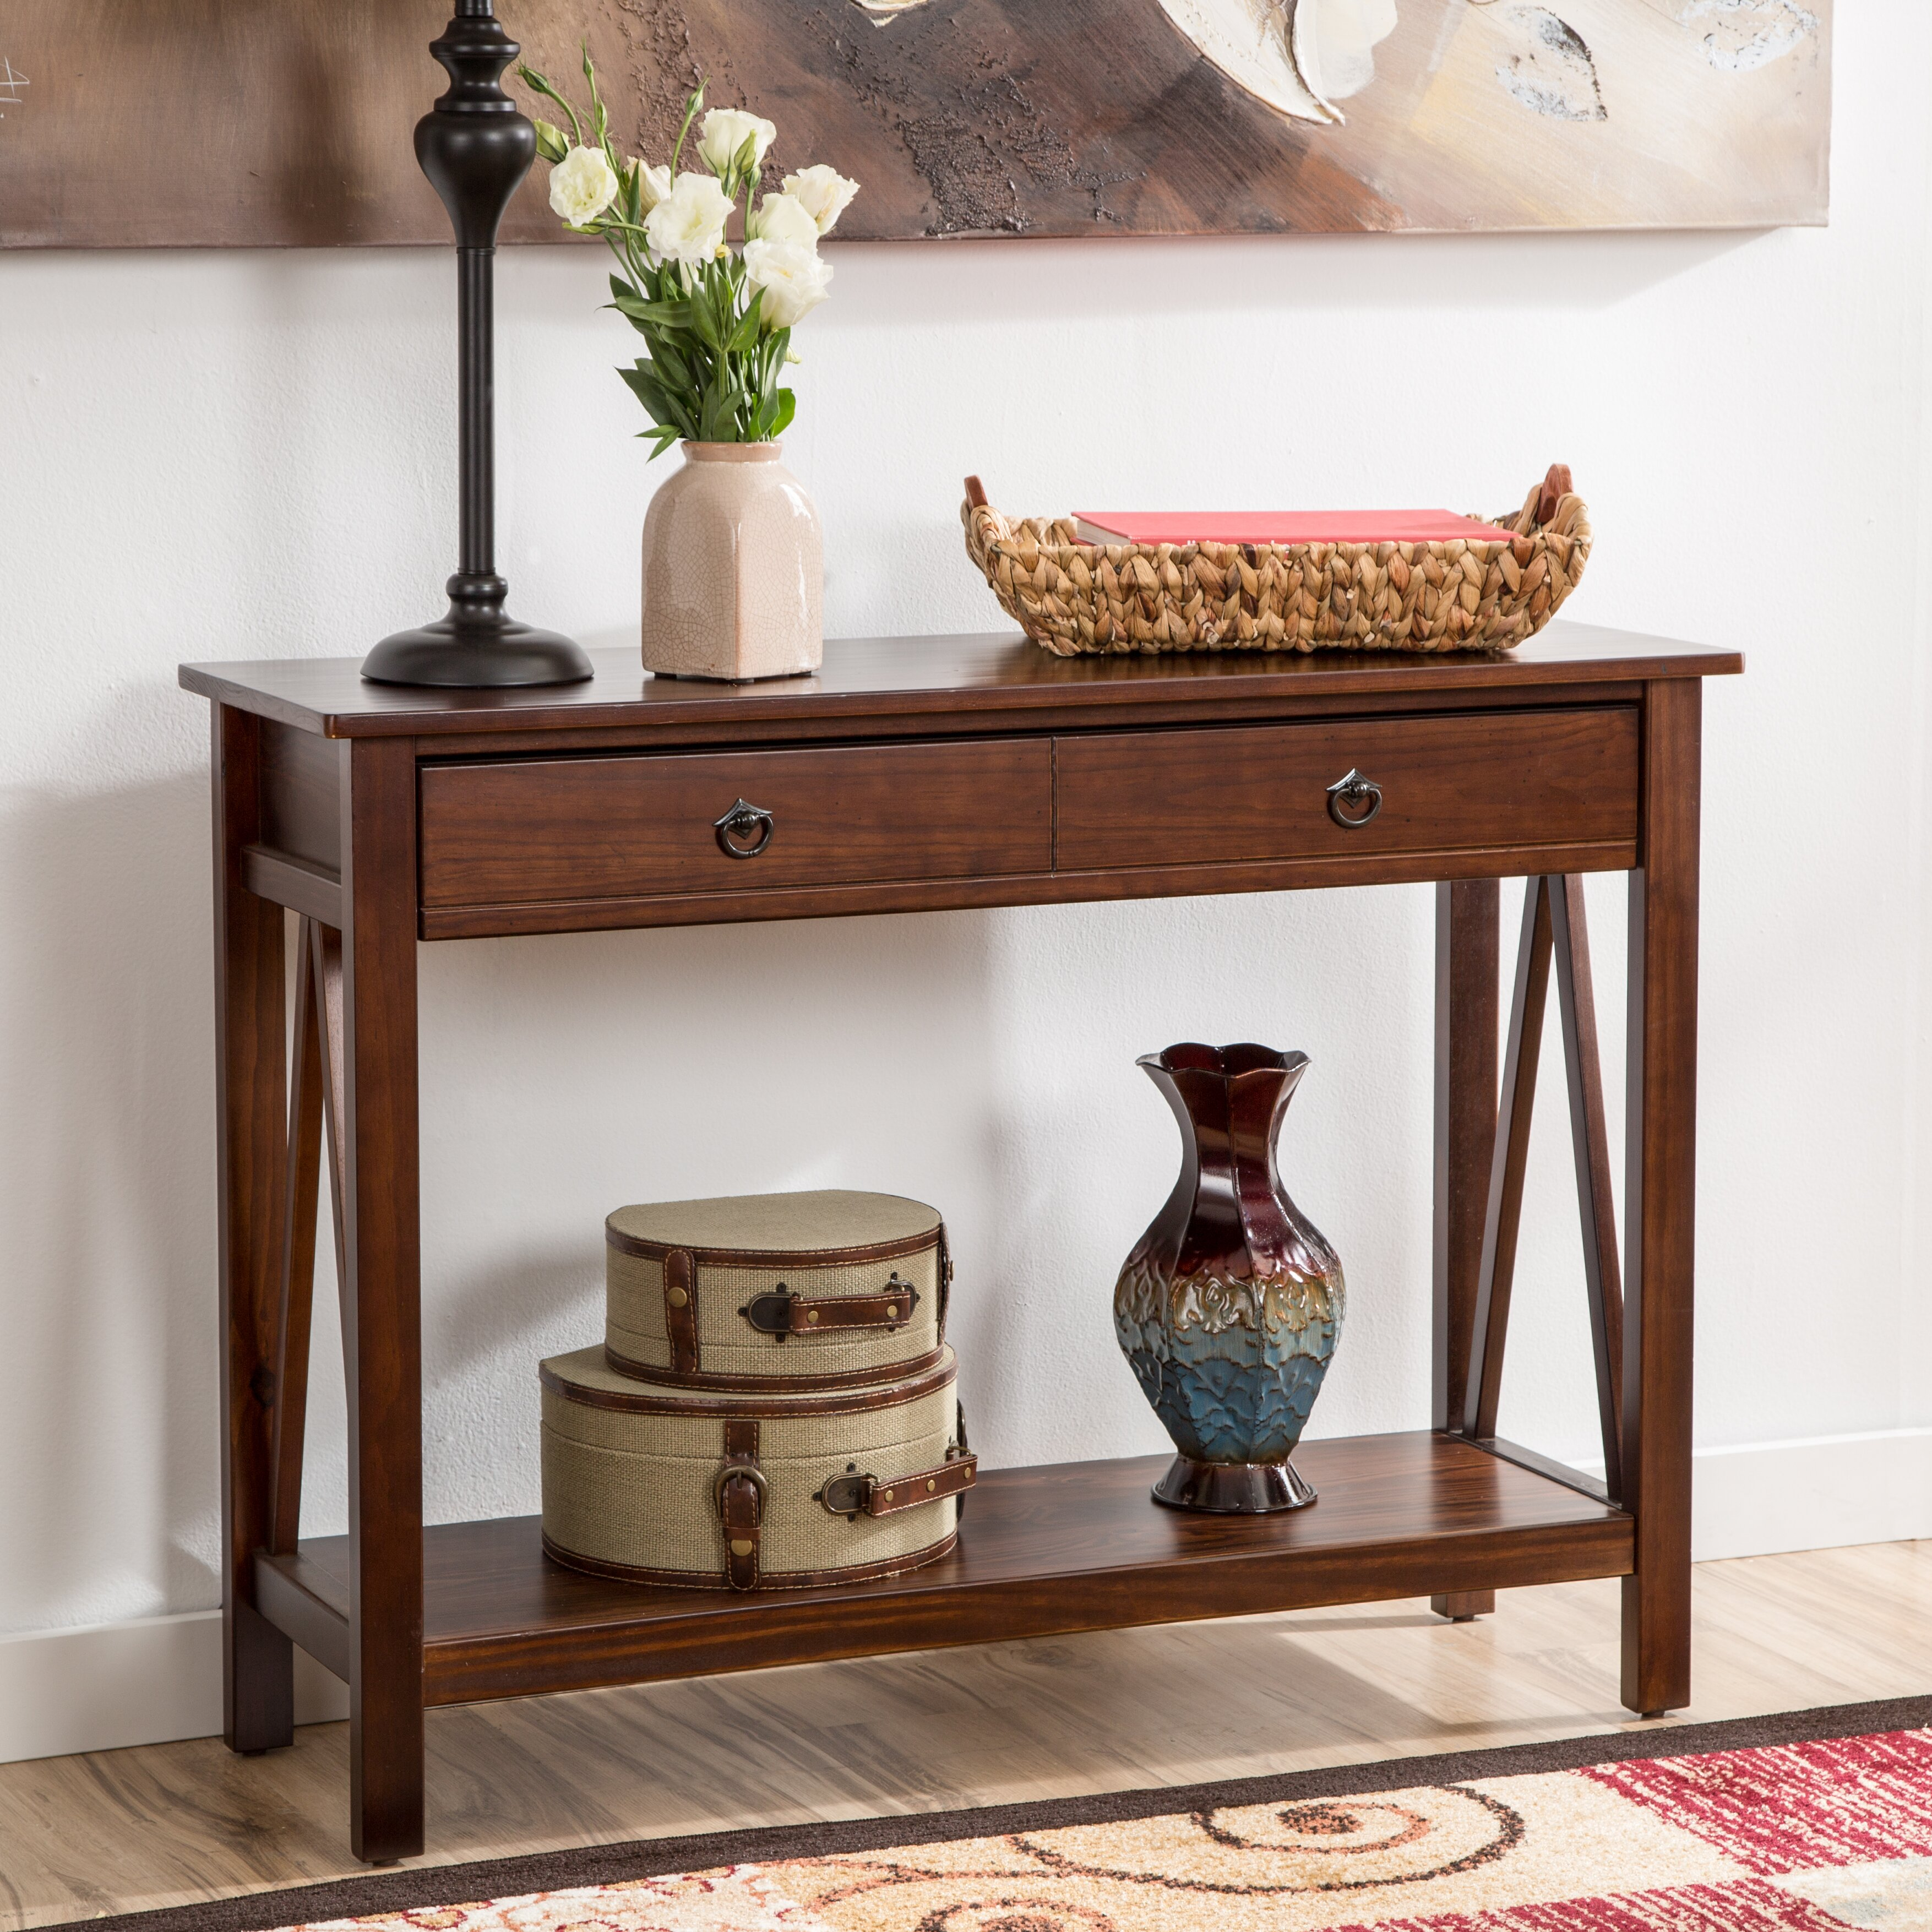 Wayfair Table: Andover Mills Wilda 2 Drawer Console Table & Reviews